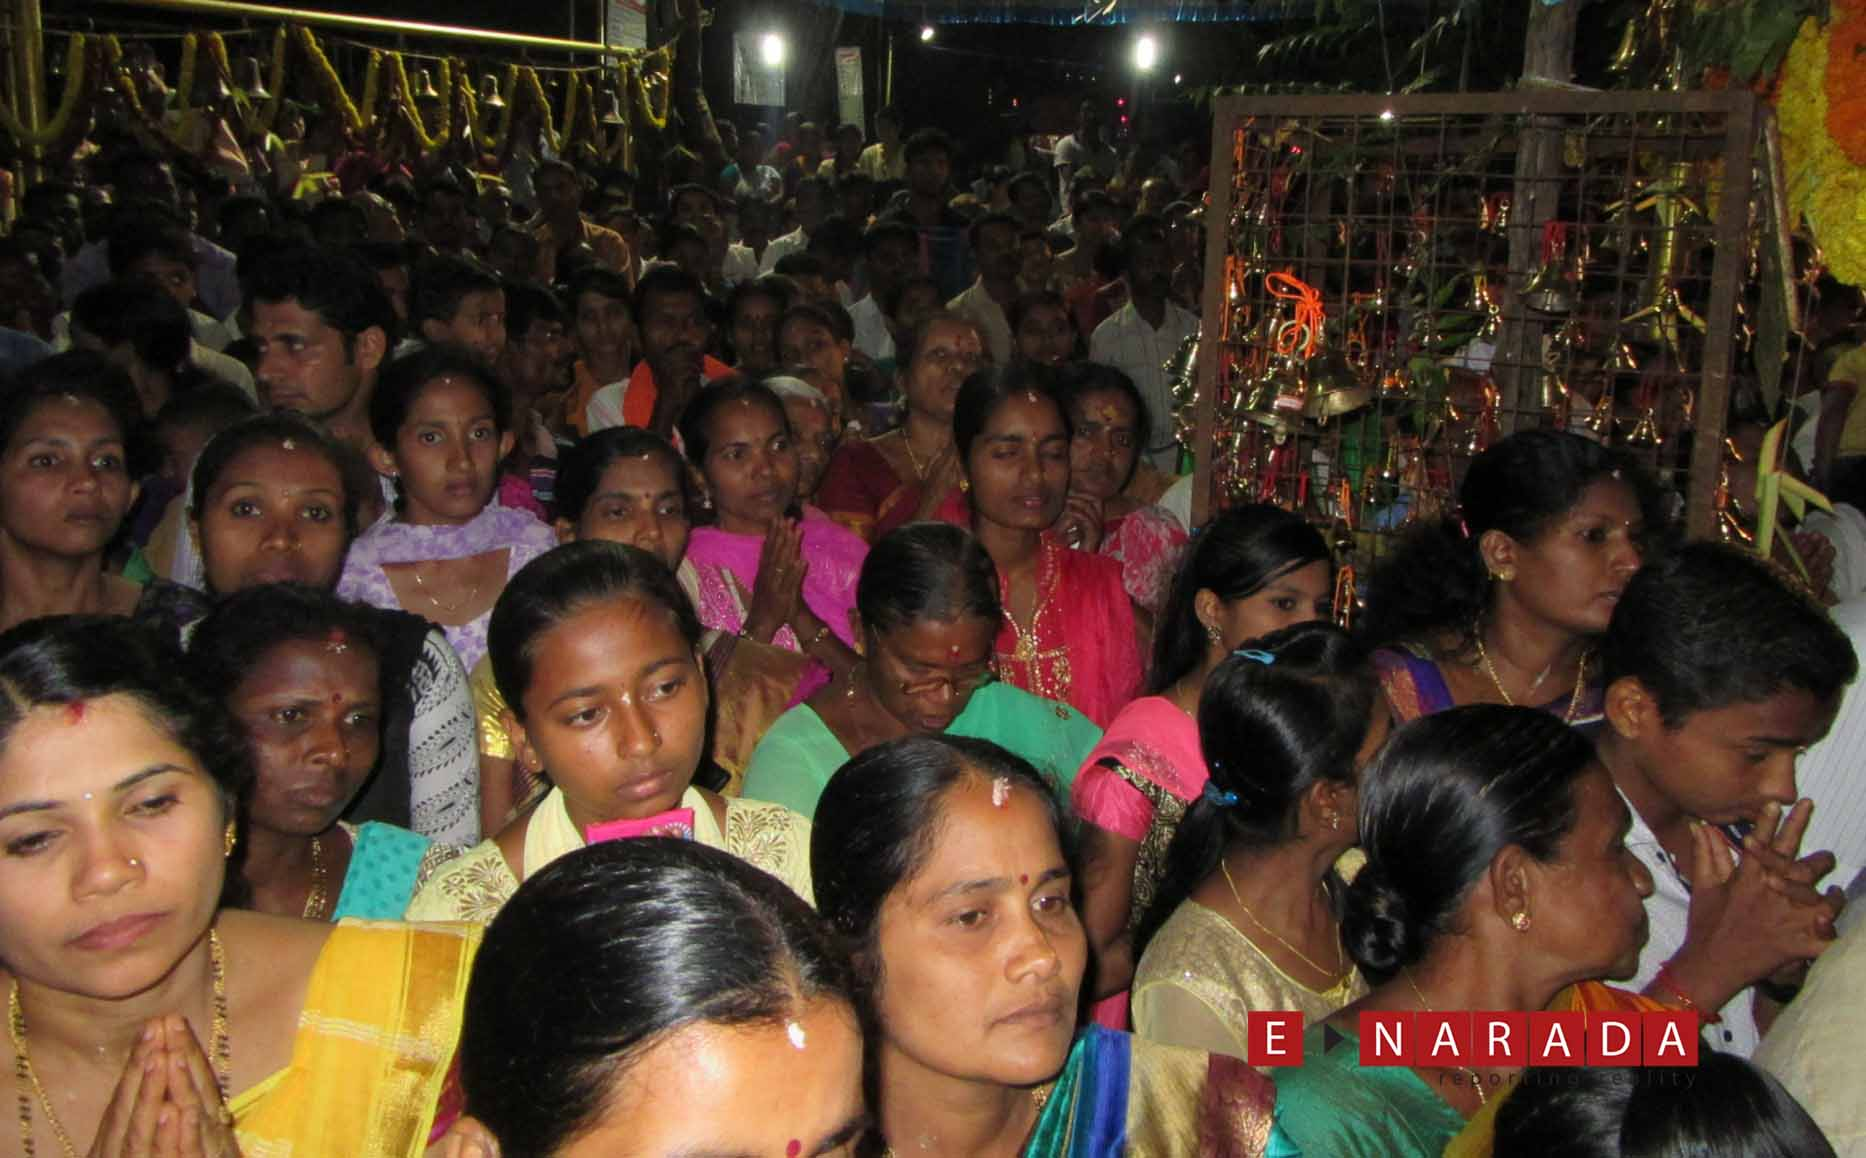 Huge turnout of devotees at the temple as Moodappa seve starts around 9.00 PM